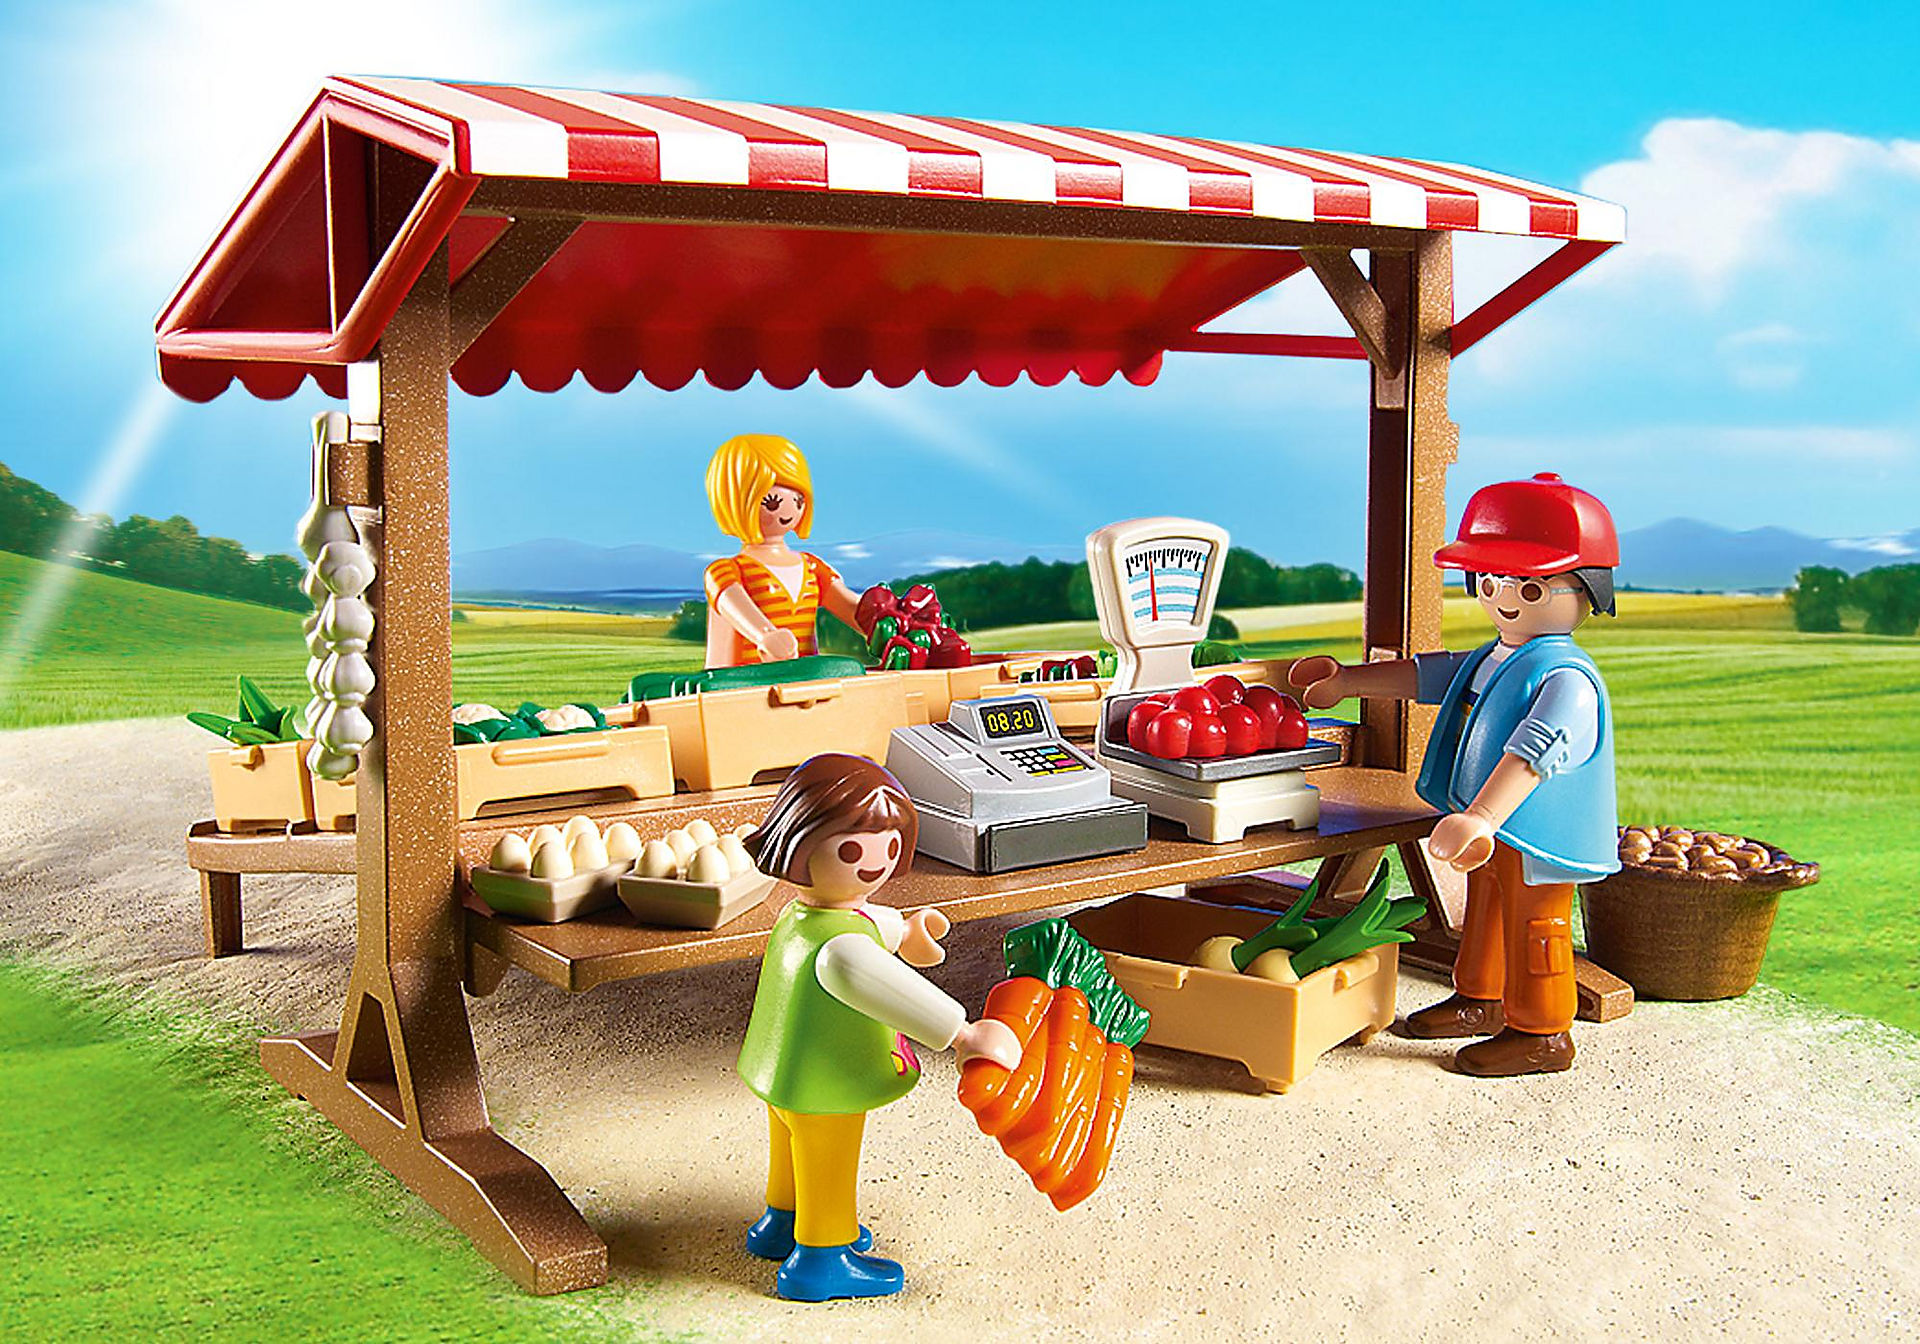 http://media.playmobil.com/i/playmobil/6121_product_extra1/Groentekraam